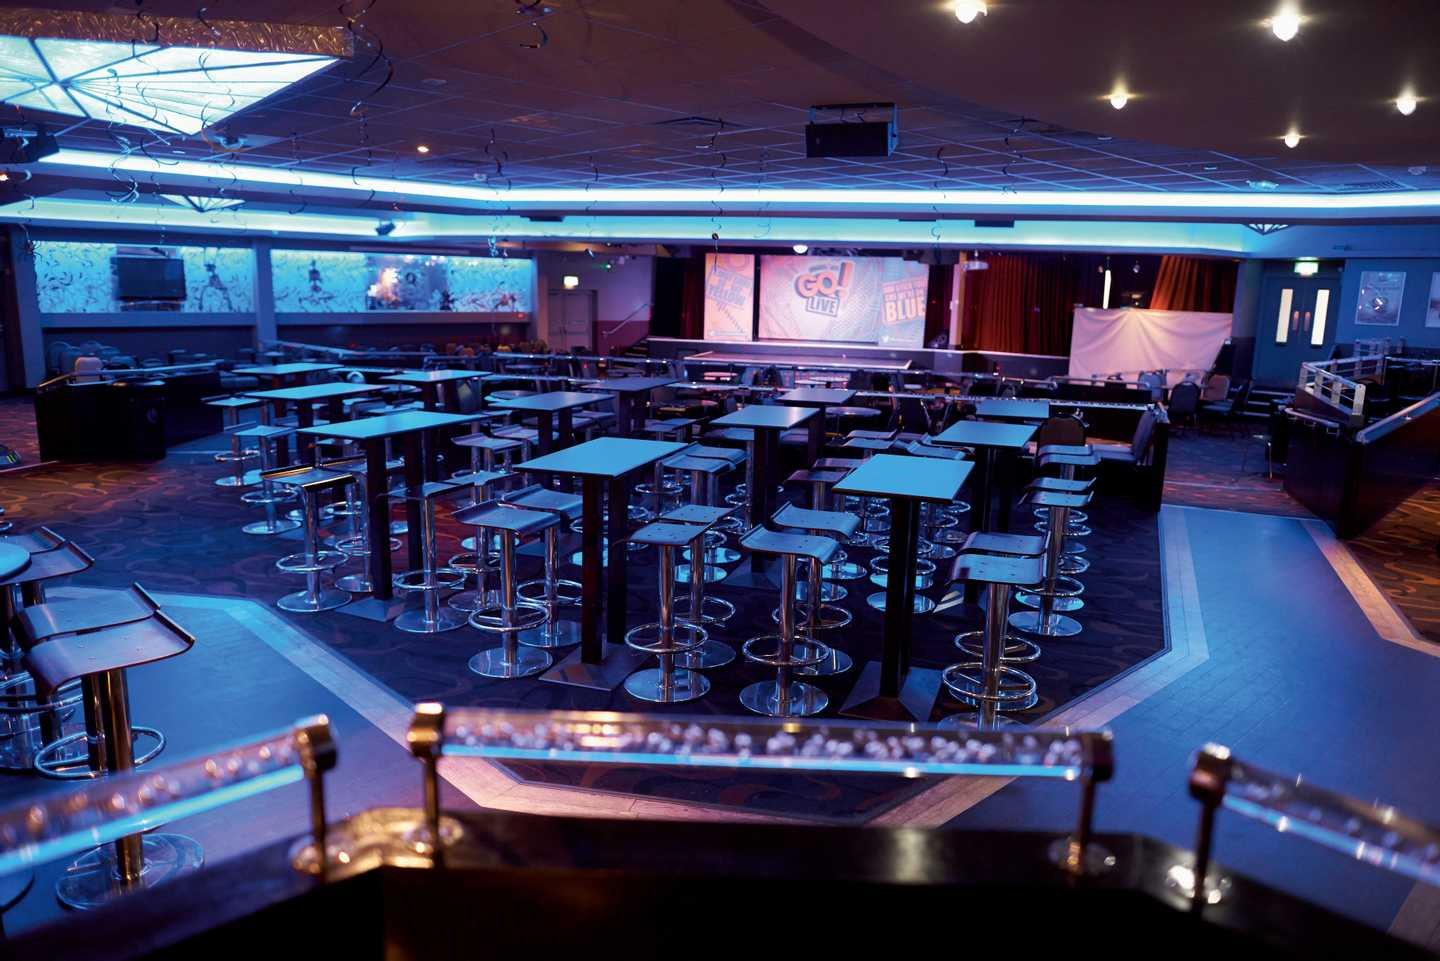 A view of our ShowBar with show lights and ample seating areas